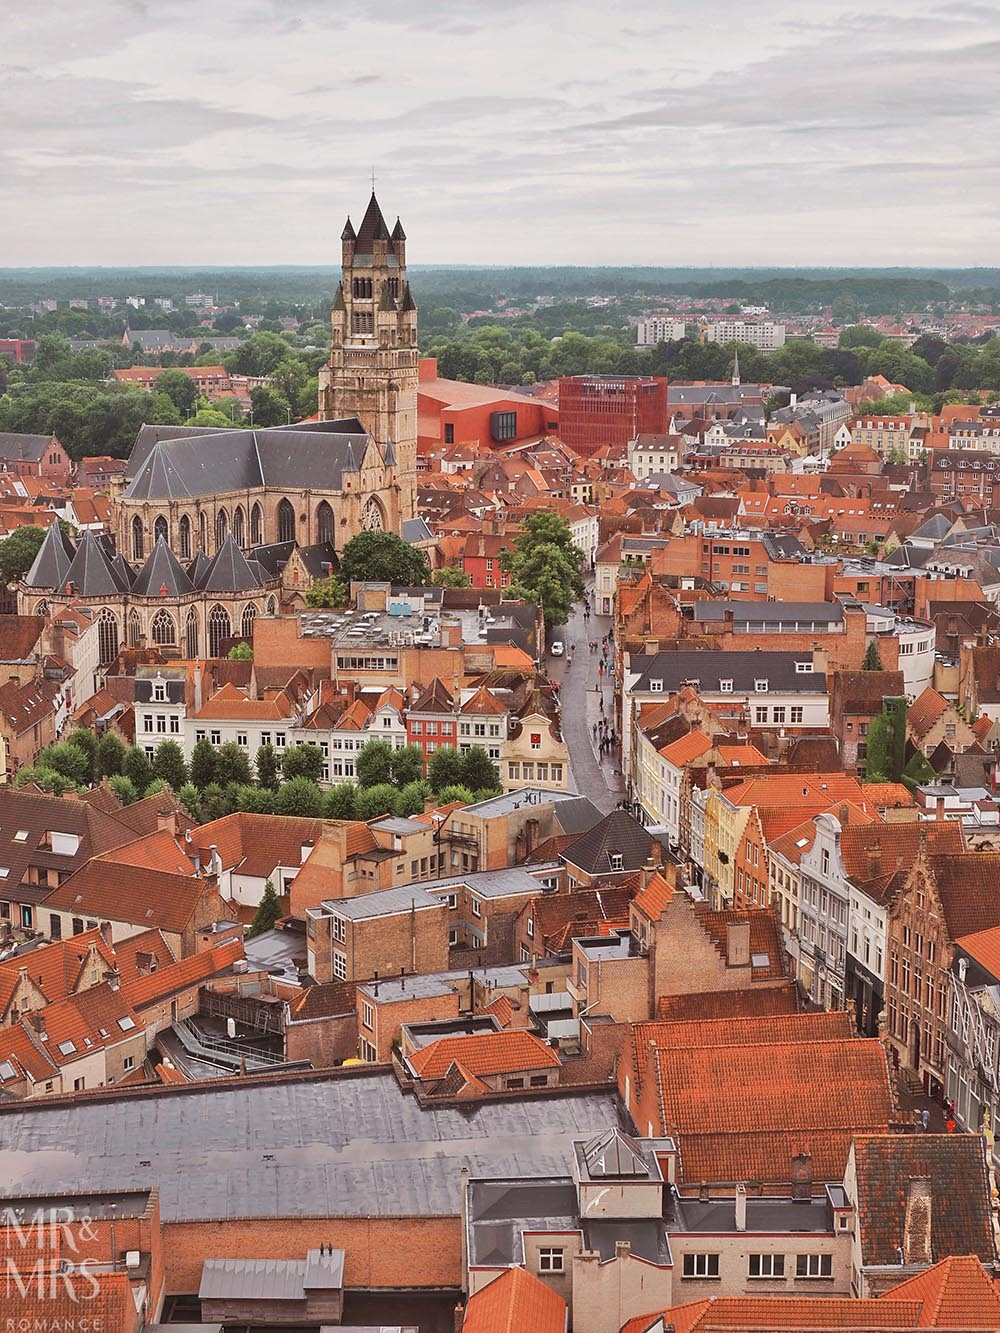 Postcards from Bruges, Belgium - view from the belfry